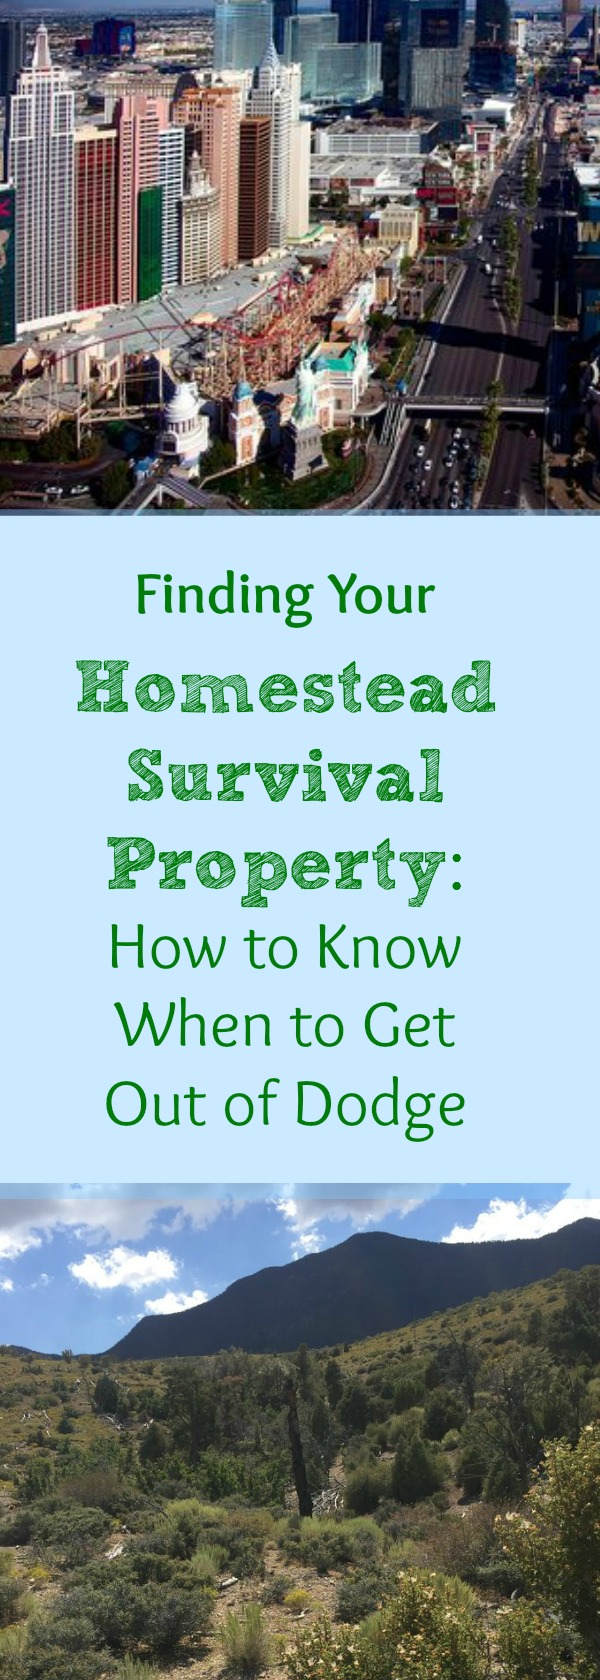 Our Search for a Forever Homestead & Survival Property: Our